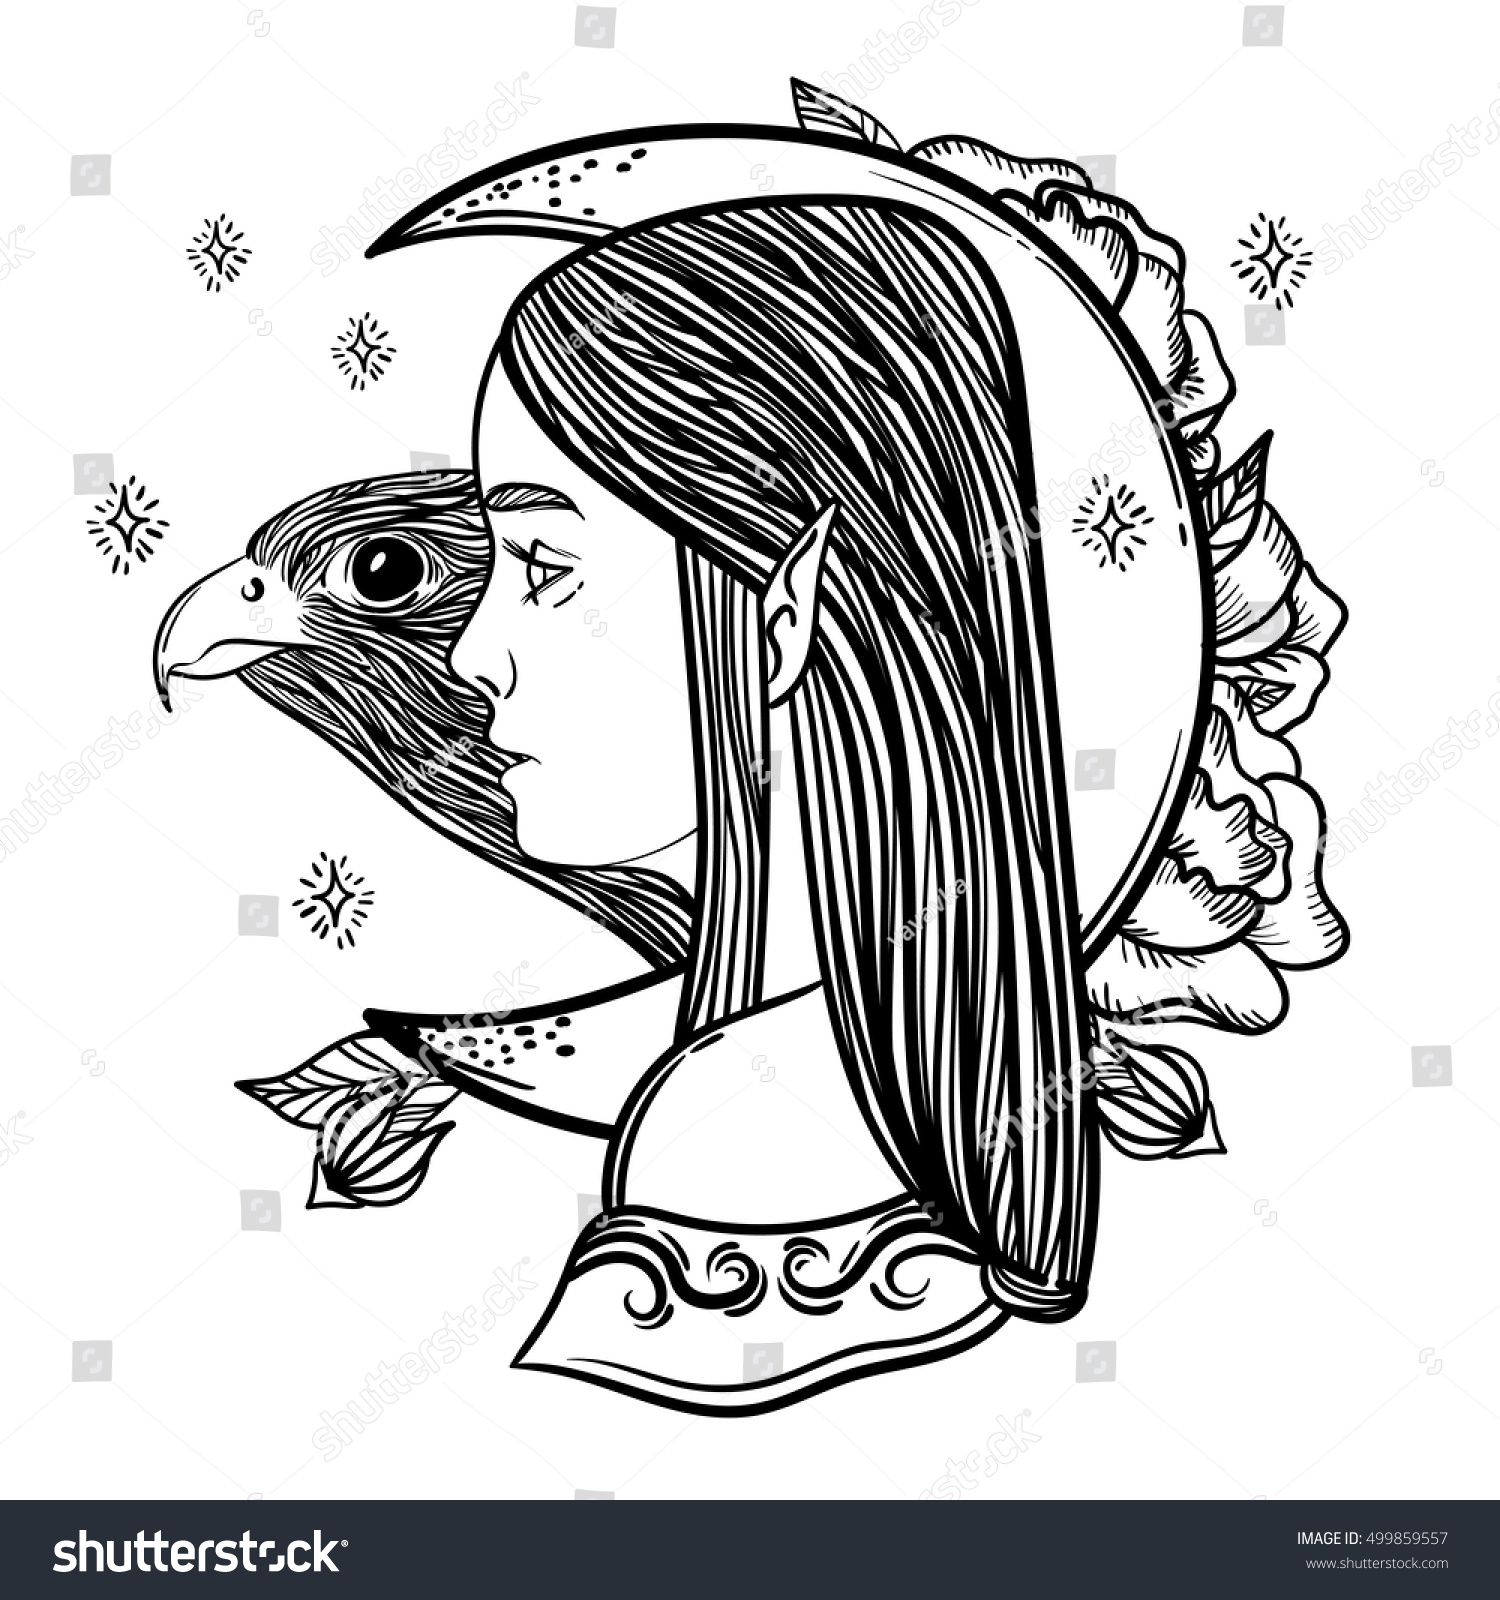 Uncategorized Elf Pictures To Print fantasy girl elf magical month bird stock vector 499859557 and a falcon linear imaginary illustration print